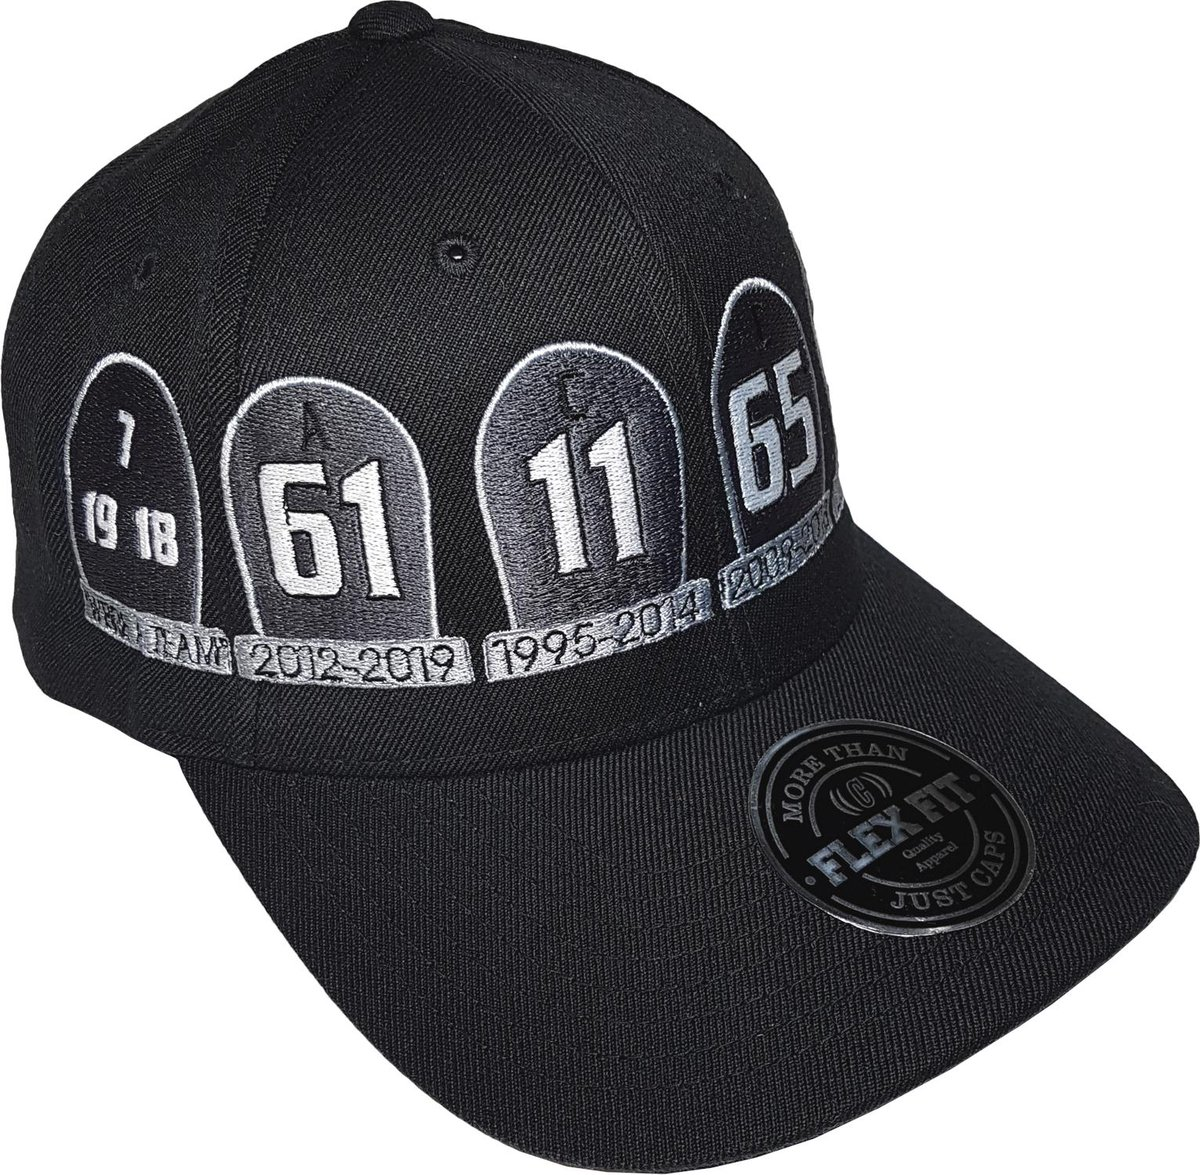 4ba3b72d0be While there is not enough room for all of them we ve summed it up best we  can with this new hat. We call it